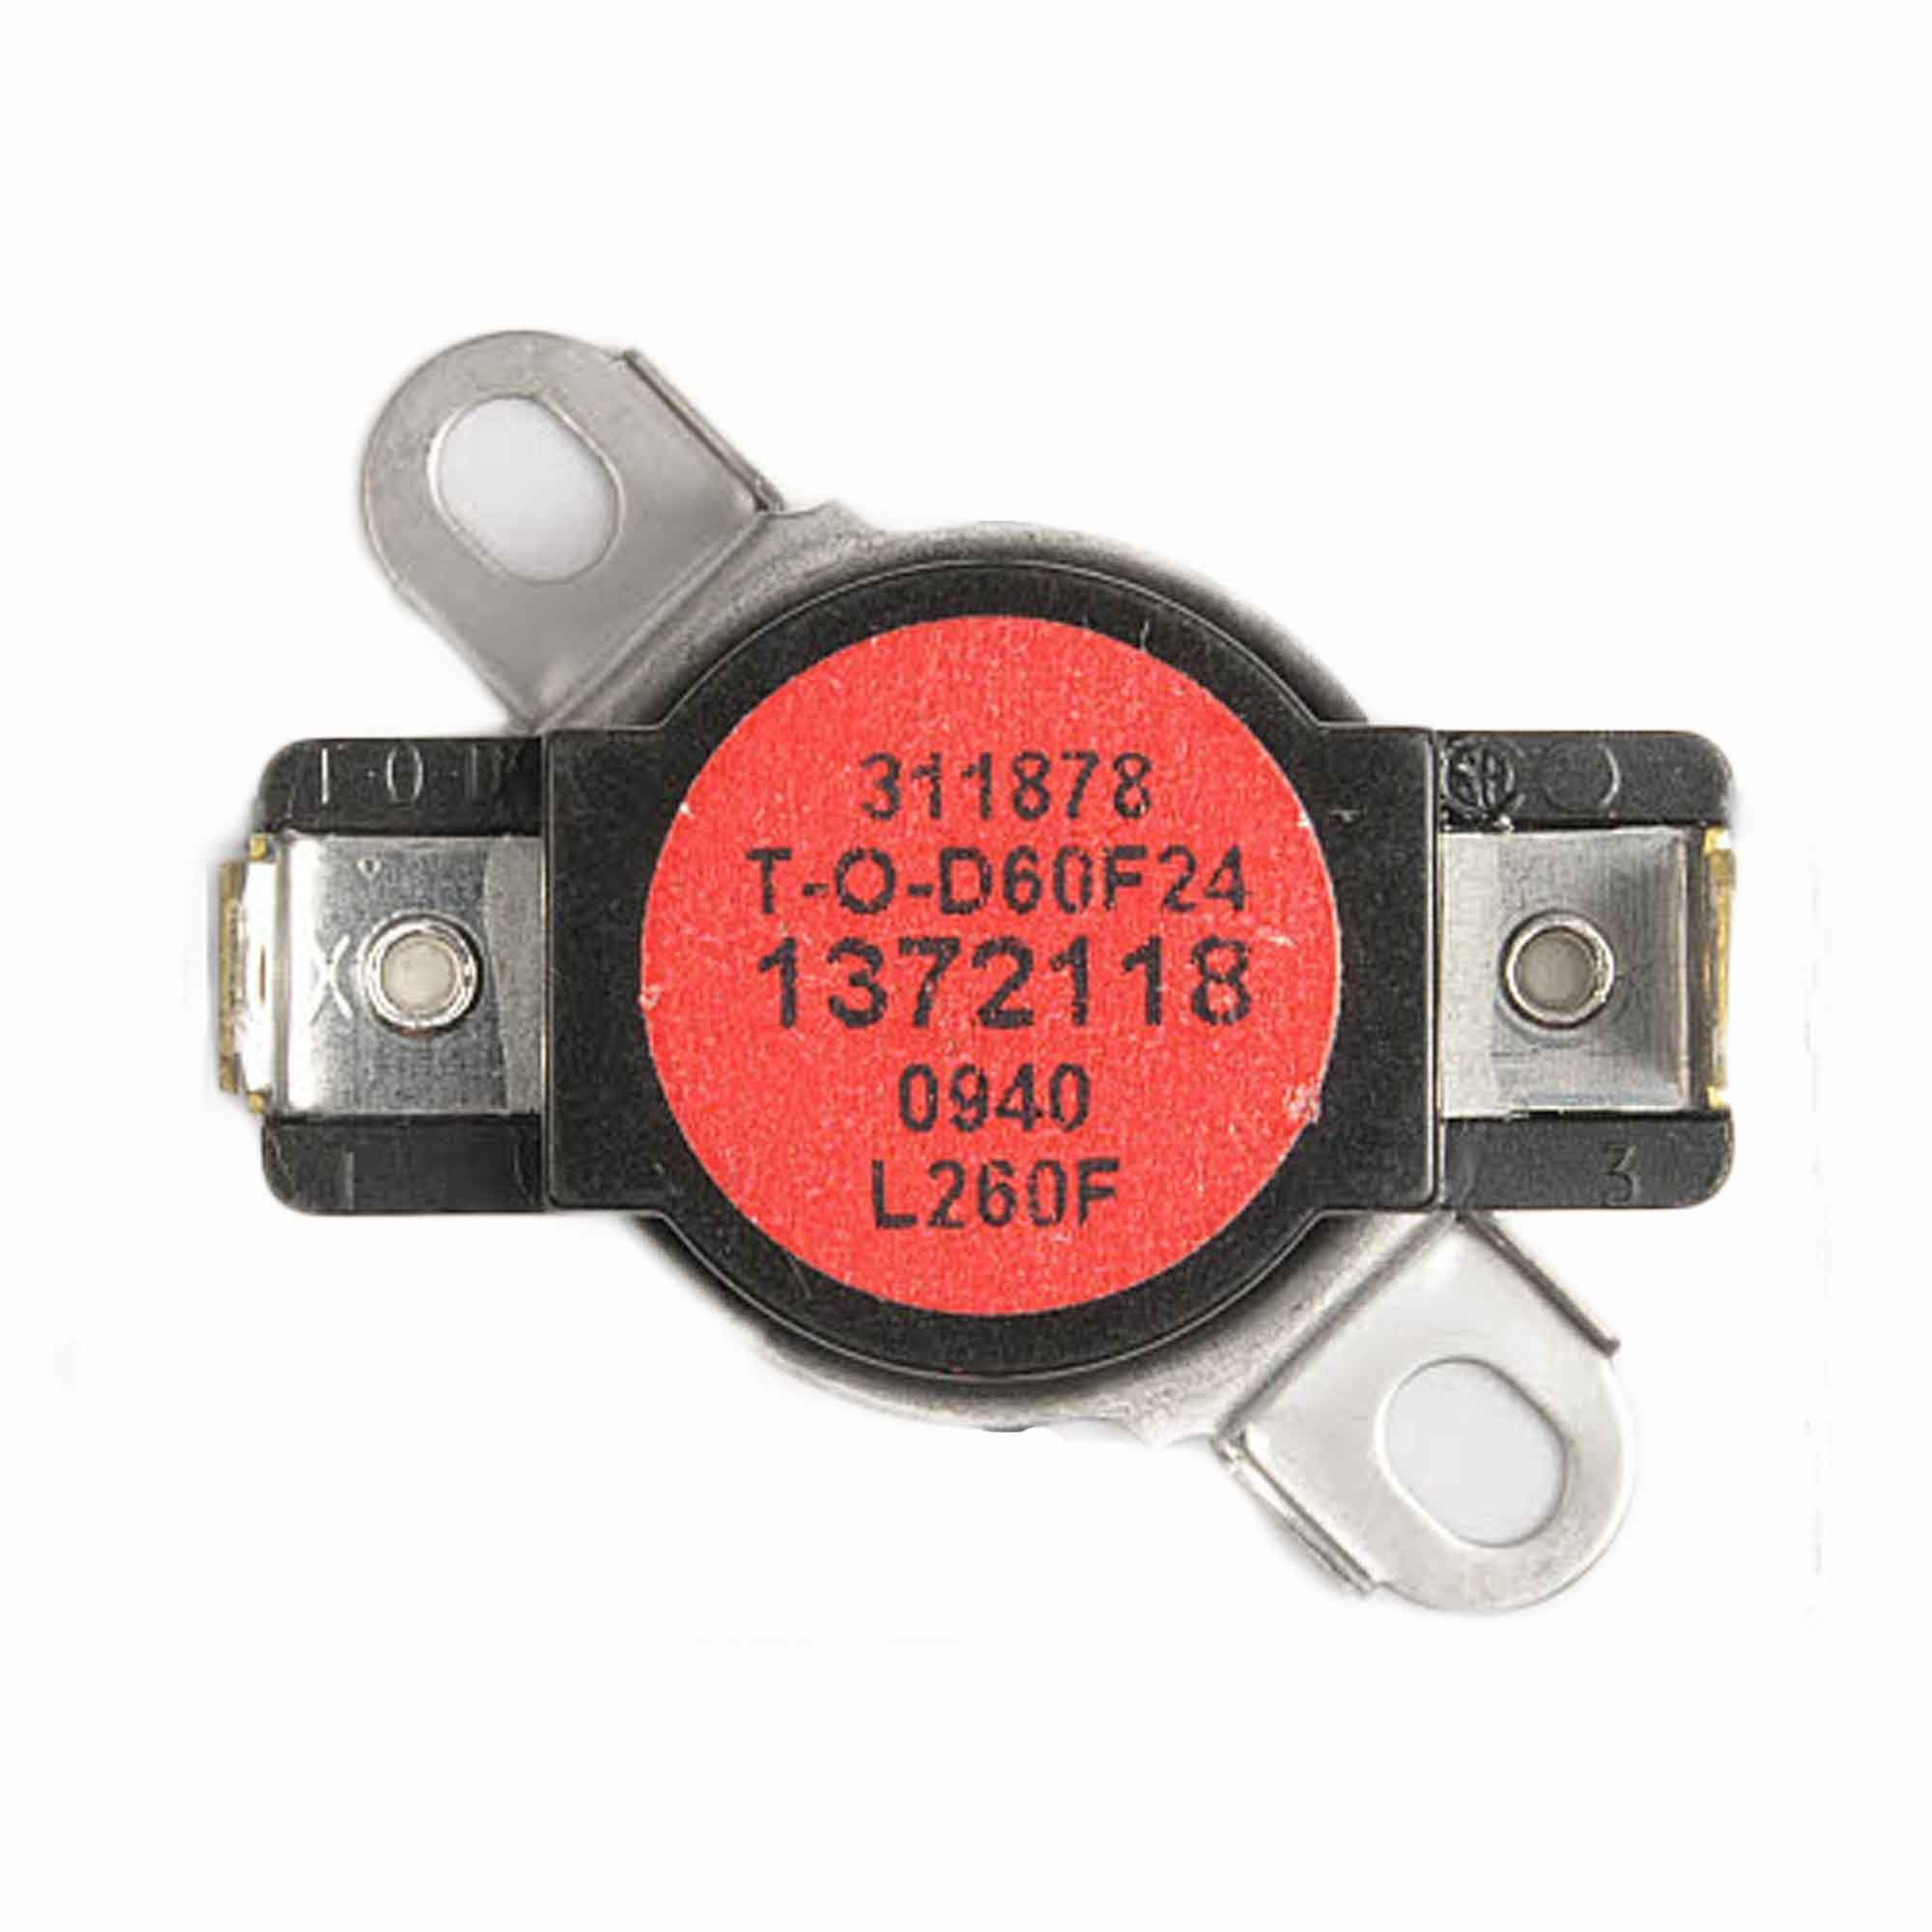 137211800 For Frigidaire Clothes Dryer Thermistor   Products